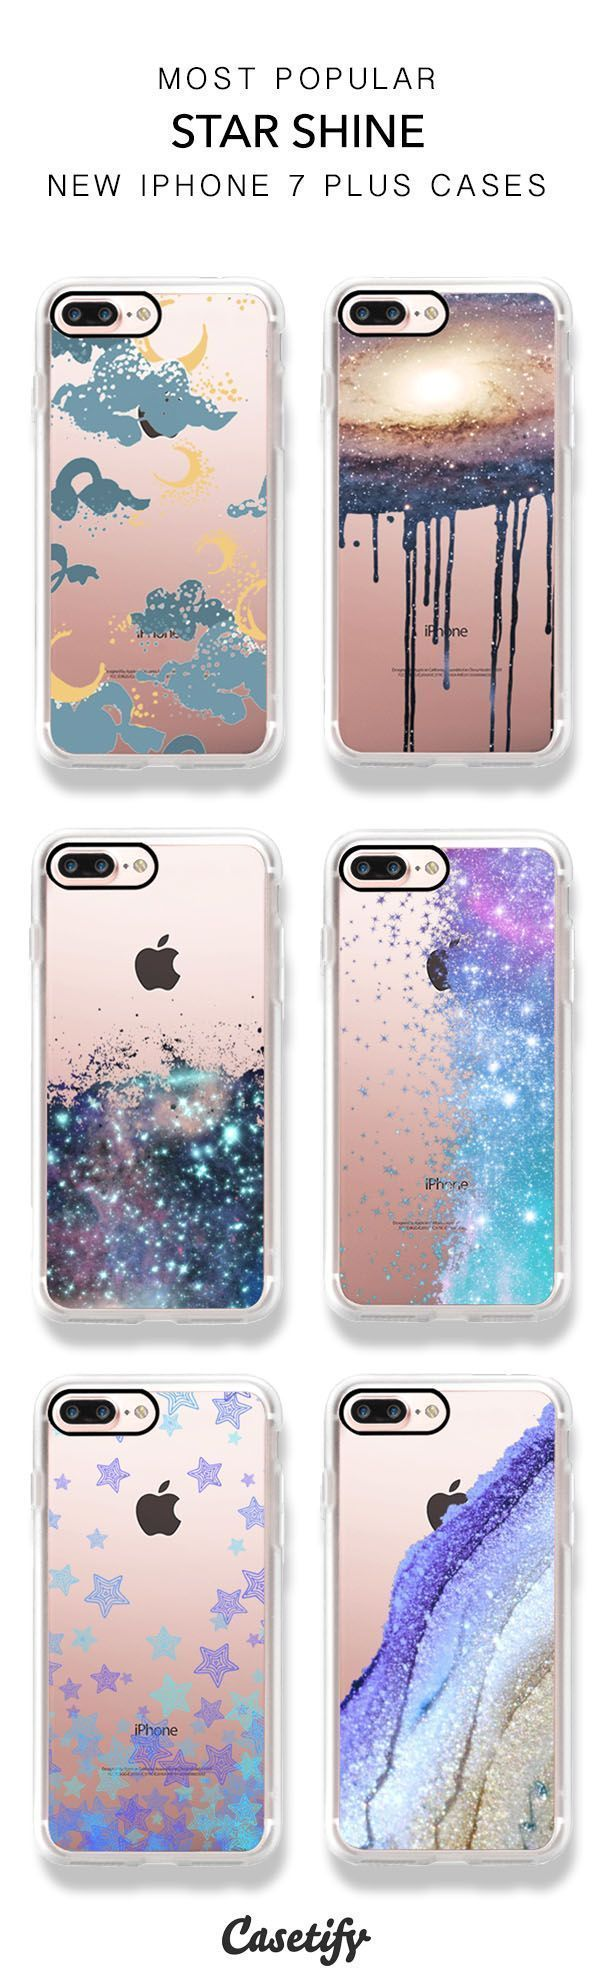 Shine like a star! Shop these best selling Star iPhone 7 and iPhone 7 Plus phone cases > https://www.casetify.com/artworks/5IgM6EZBg2 #iphone7pluscase #iphone,